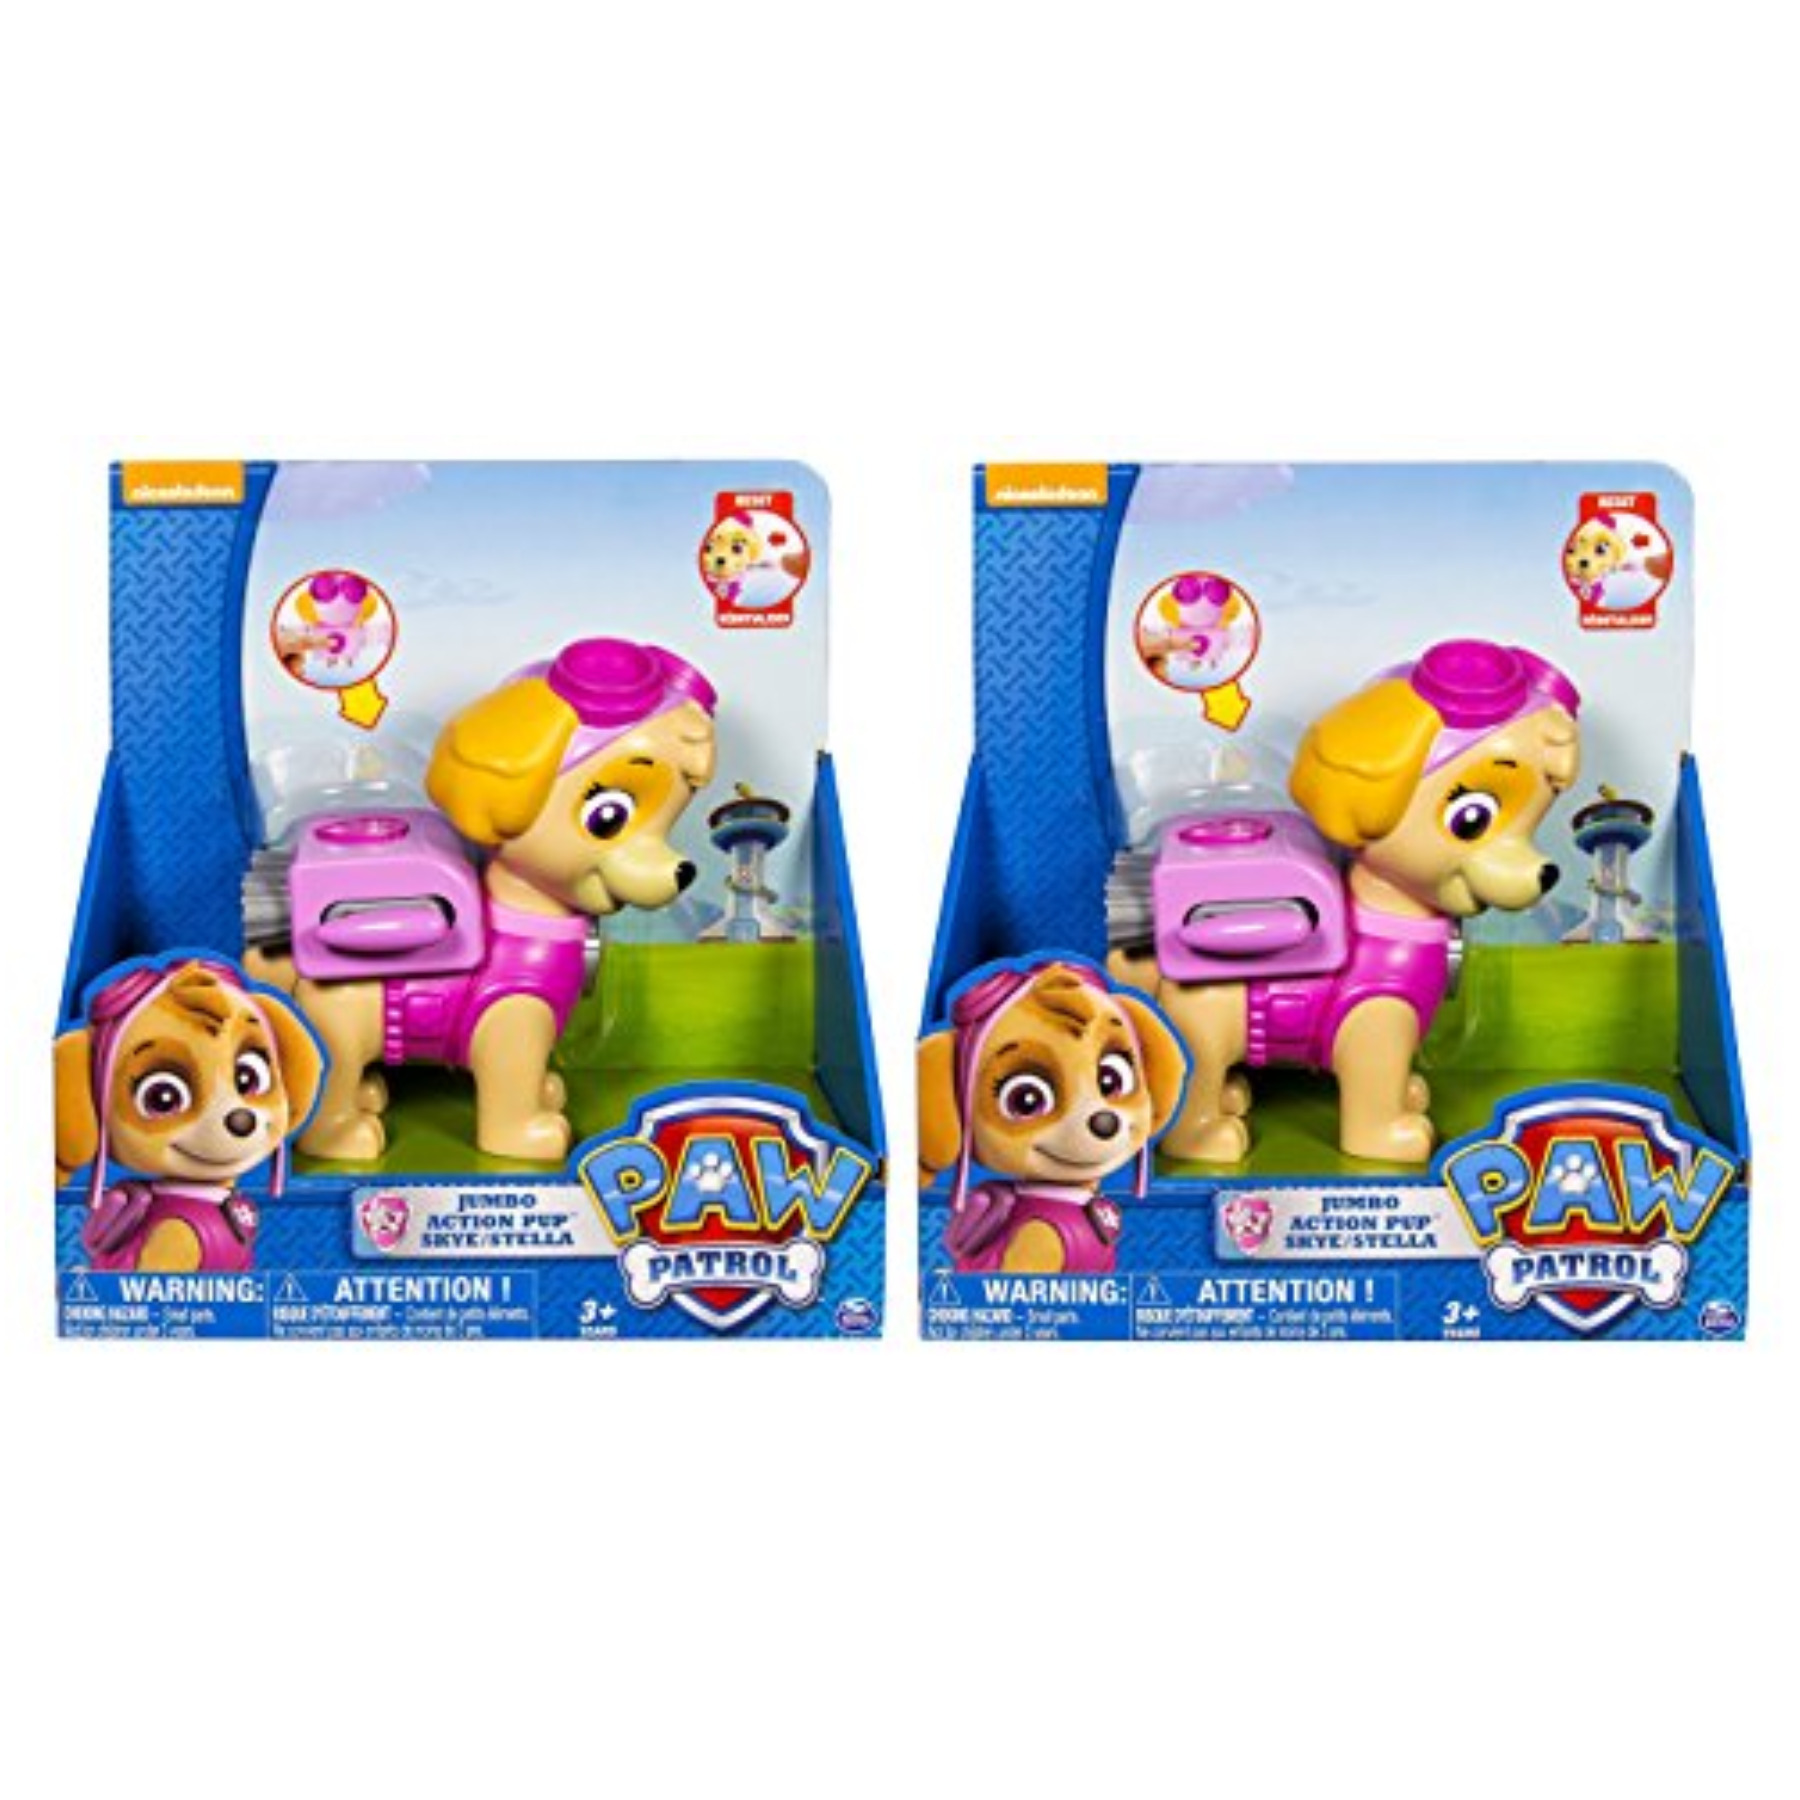 Paw Patrol Jumbo Action Pup Toy, Skye Twin Pack